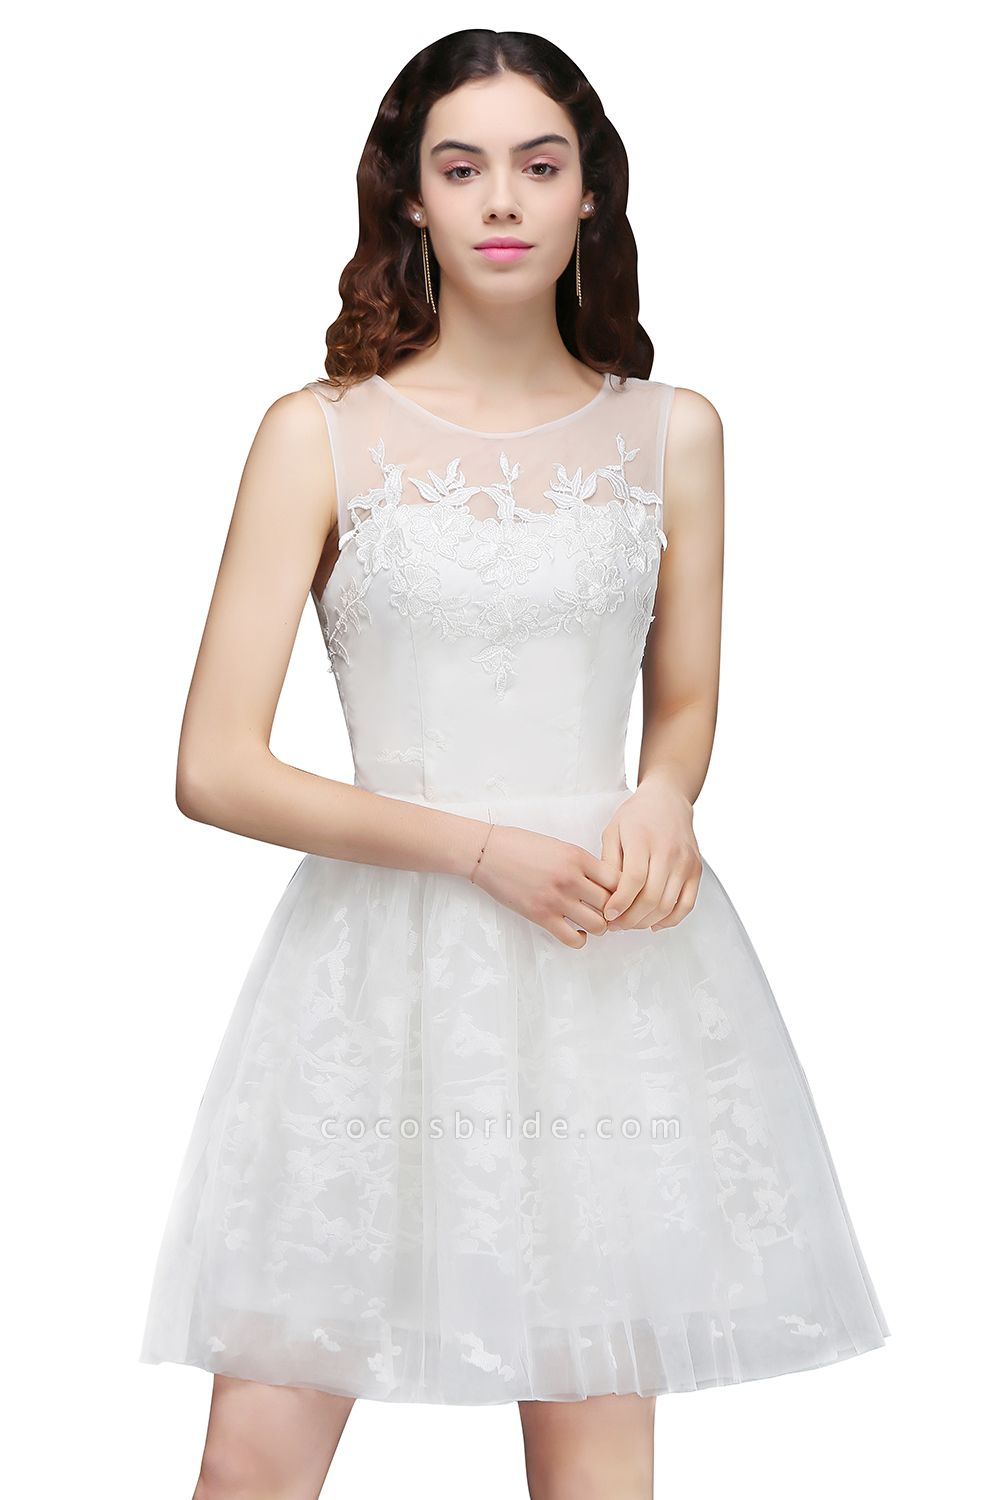 Affordable Jewel Tulle A-line Homecoming Dress